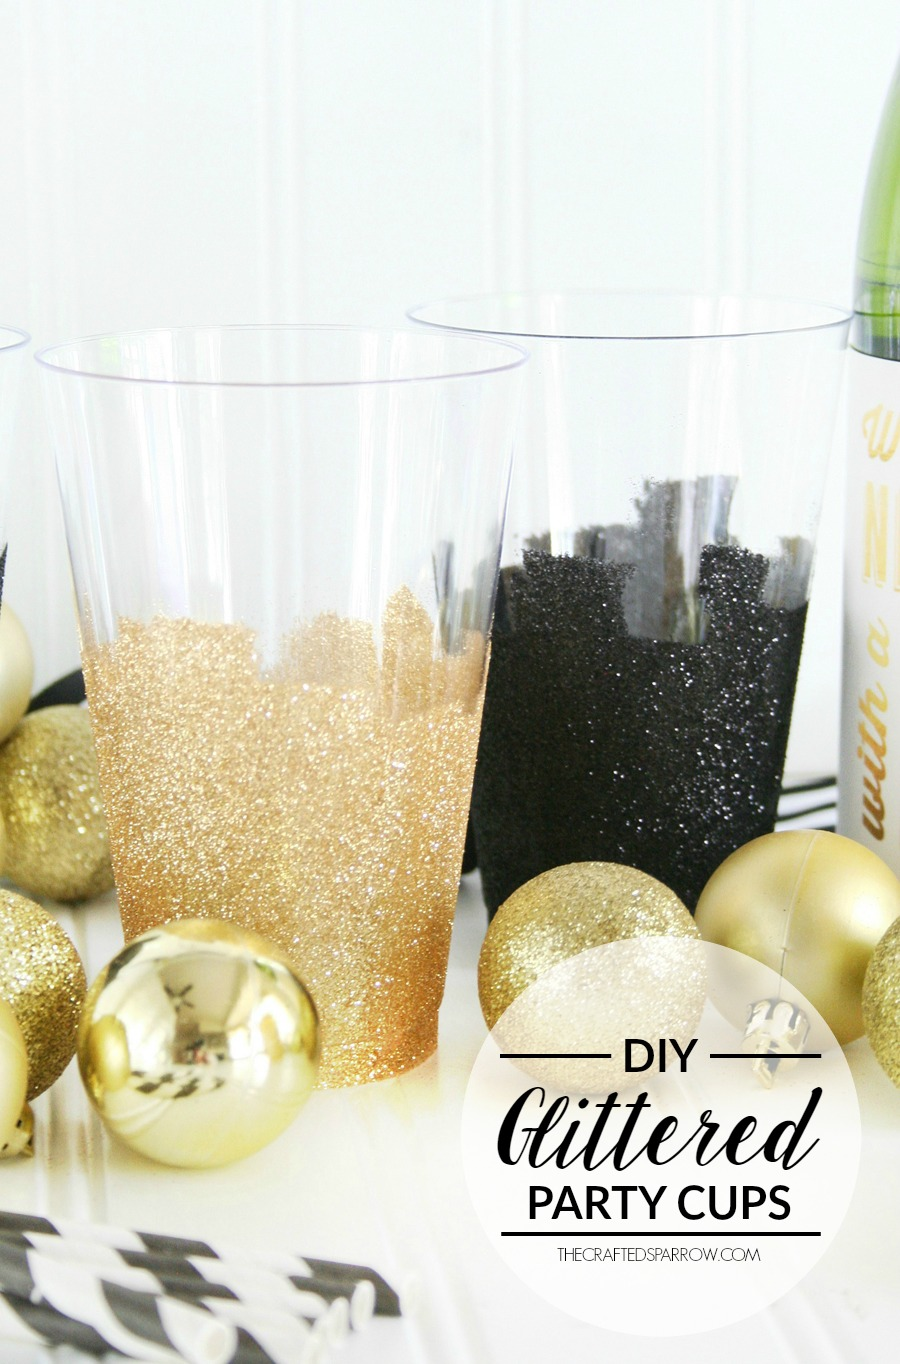 DIY Glittered Party Cups